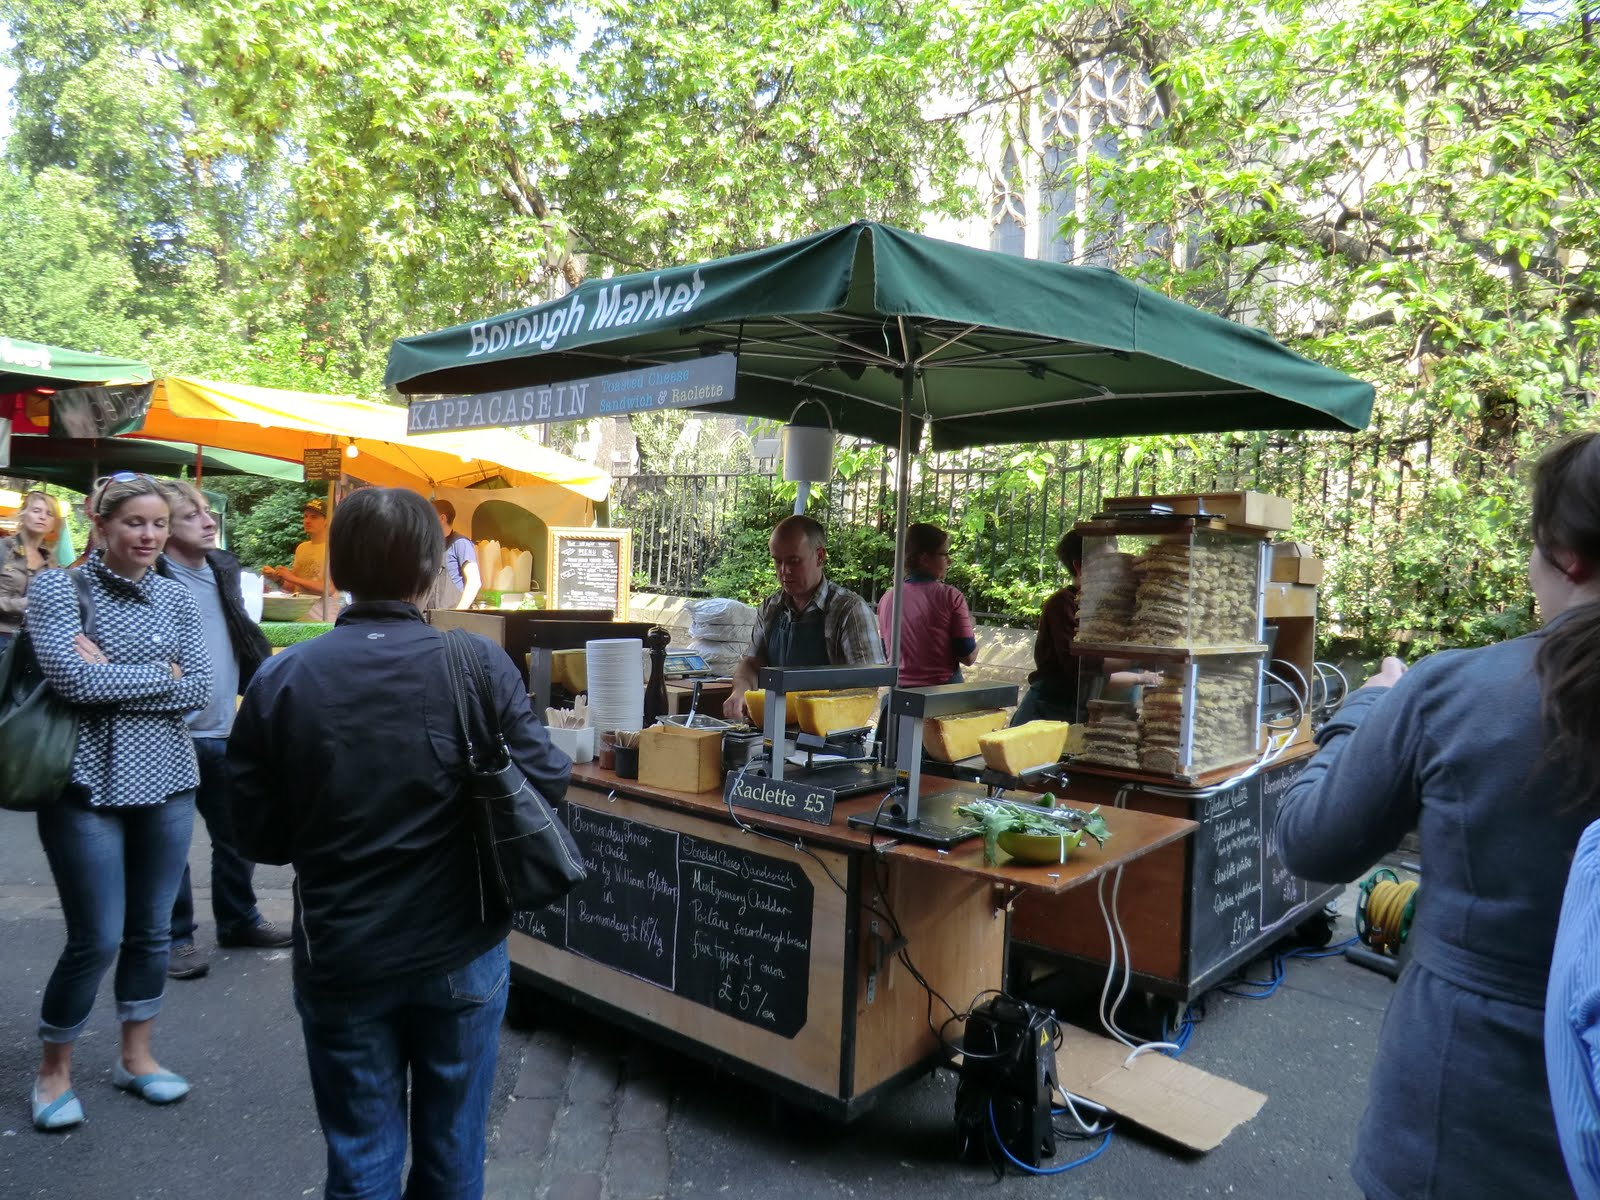 La Cuisine de Sarah: Borough Market and the Ultimate Cheese Toastie